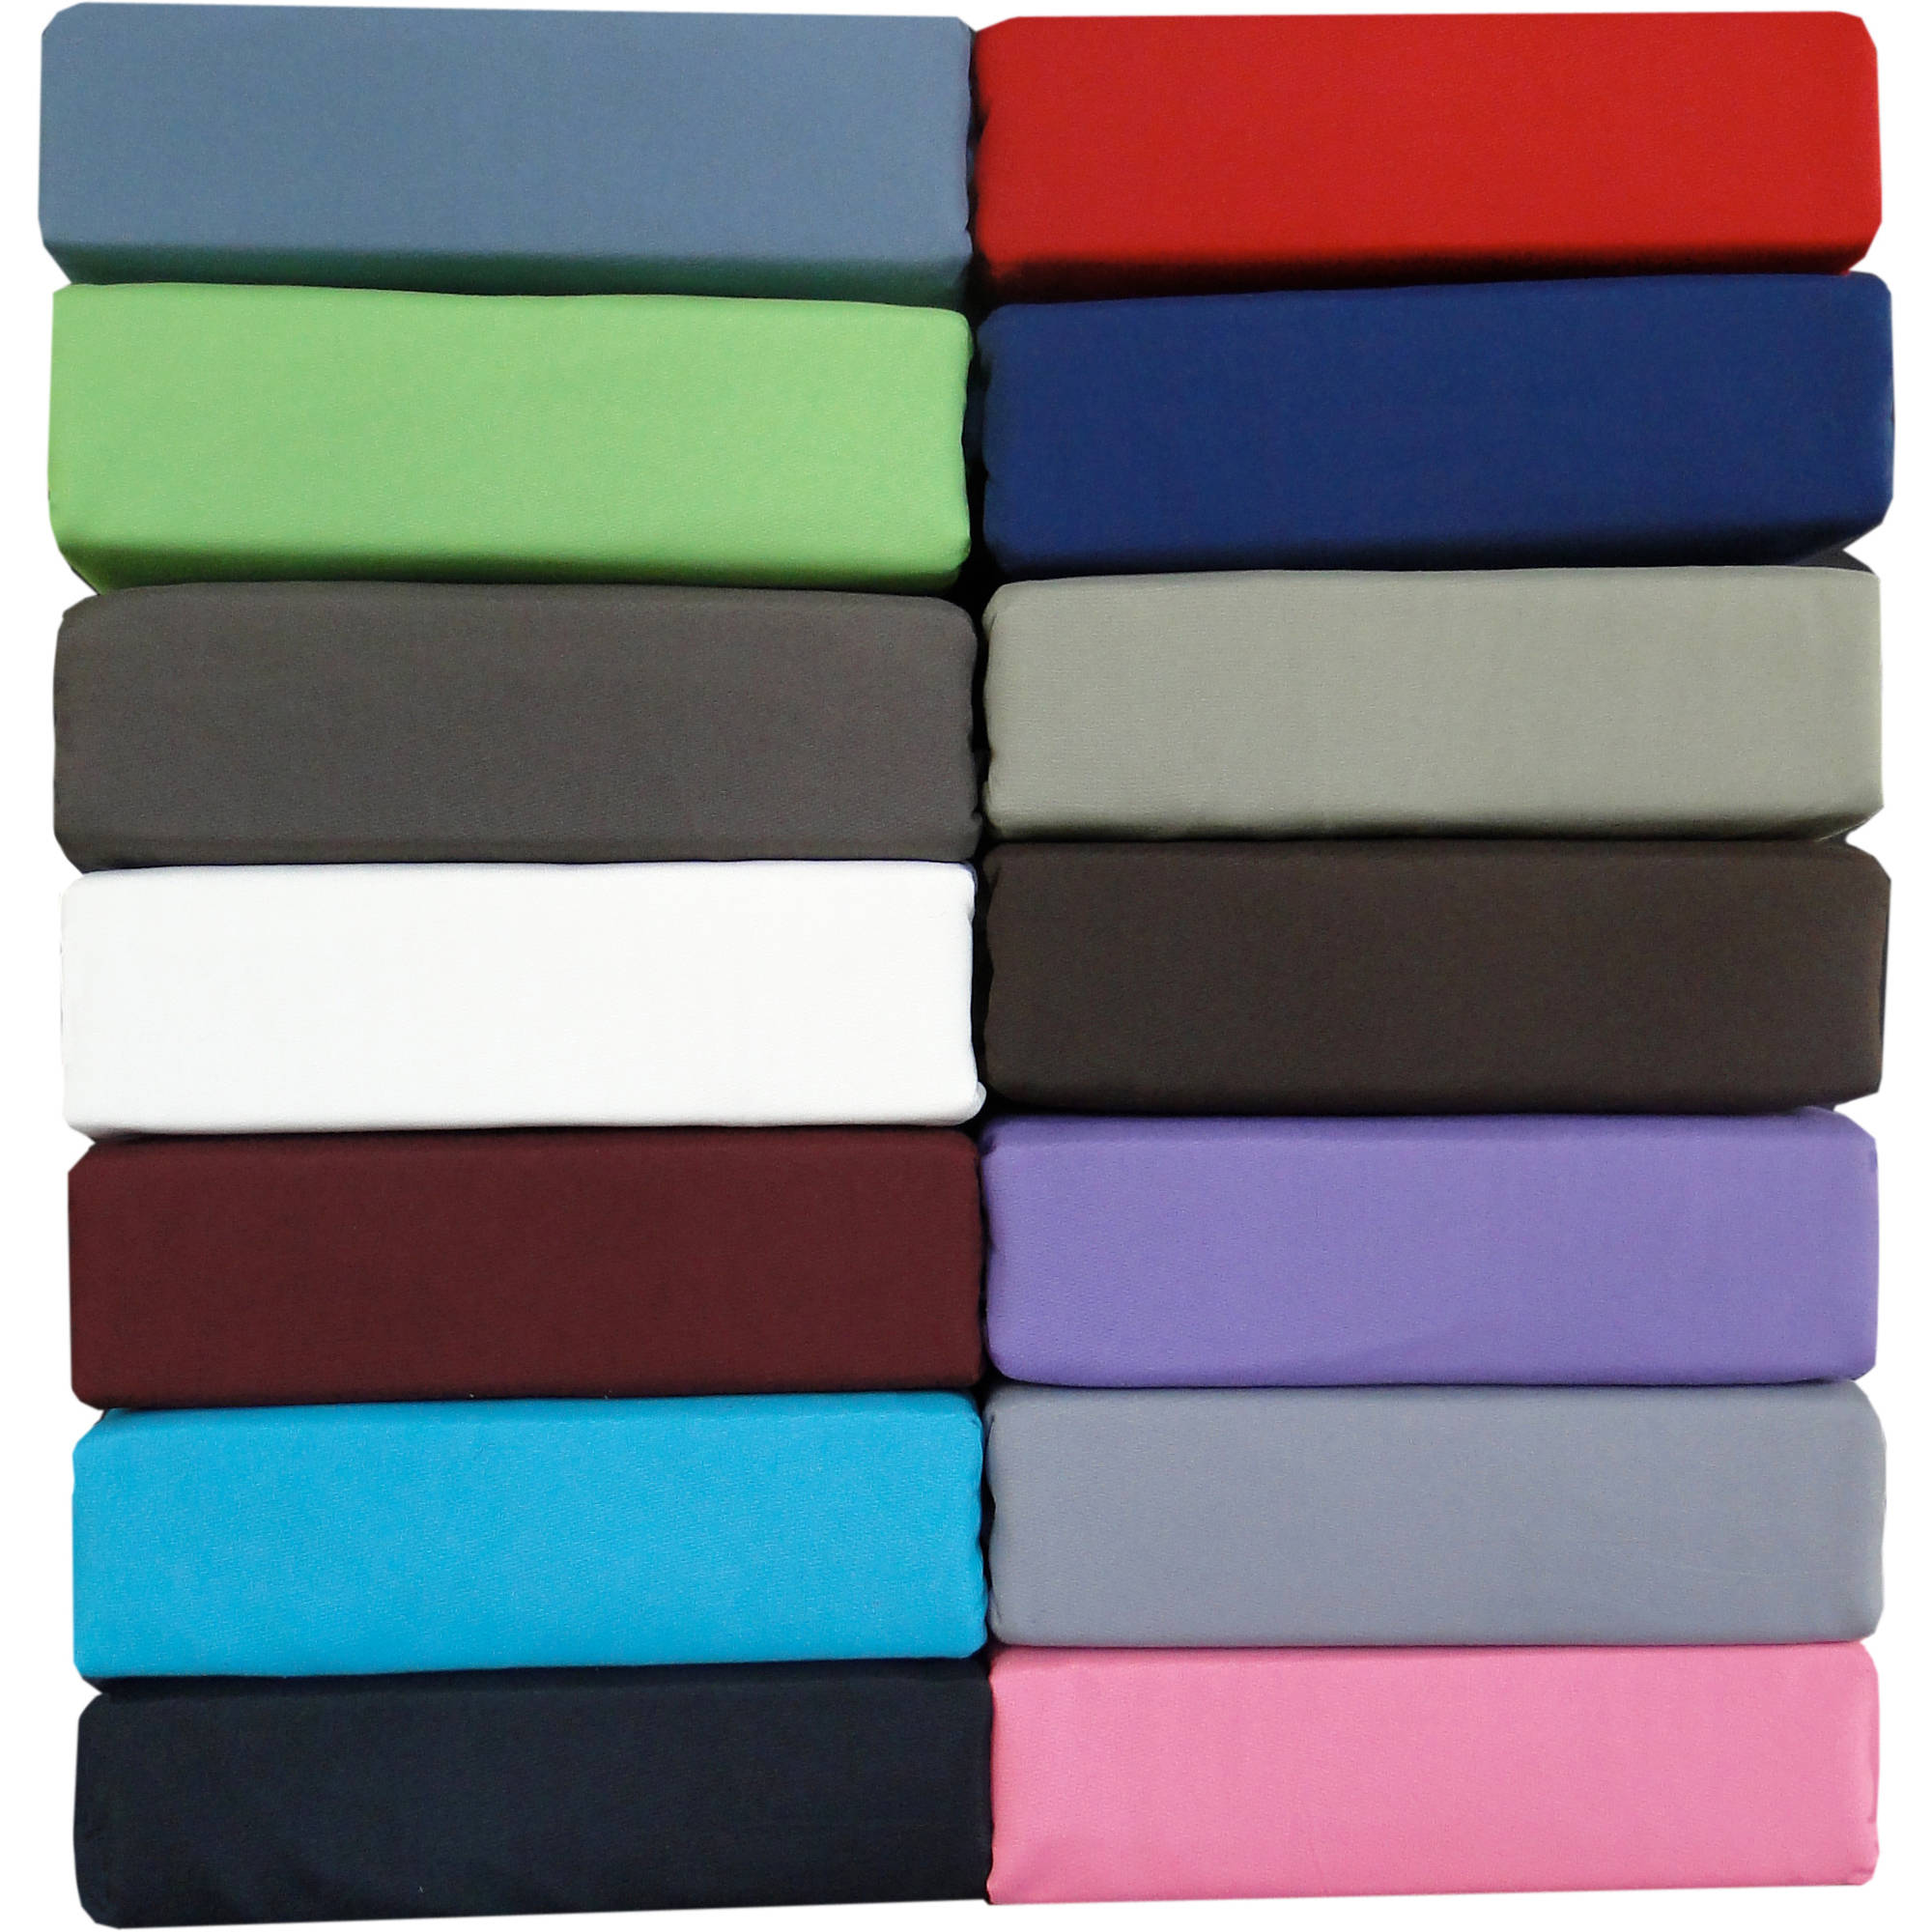 Soft Cozy Easy Care Deluxe Microfiber Sheet Set